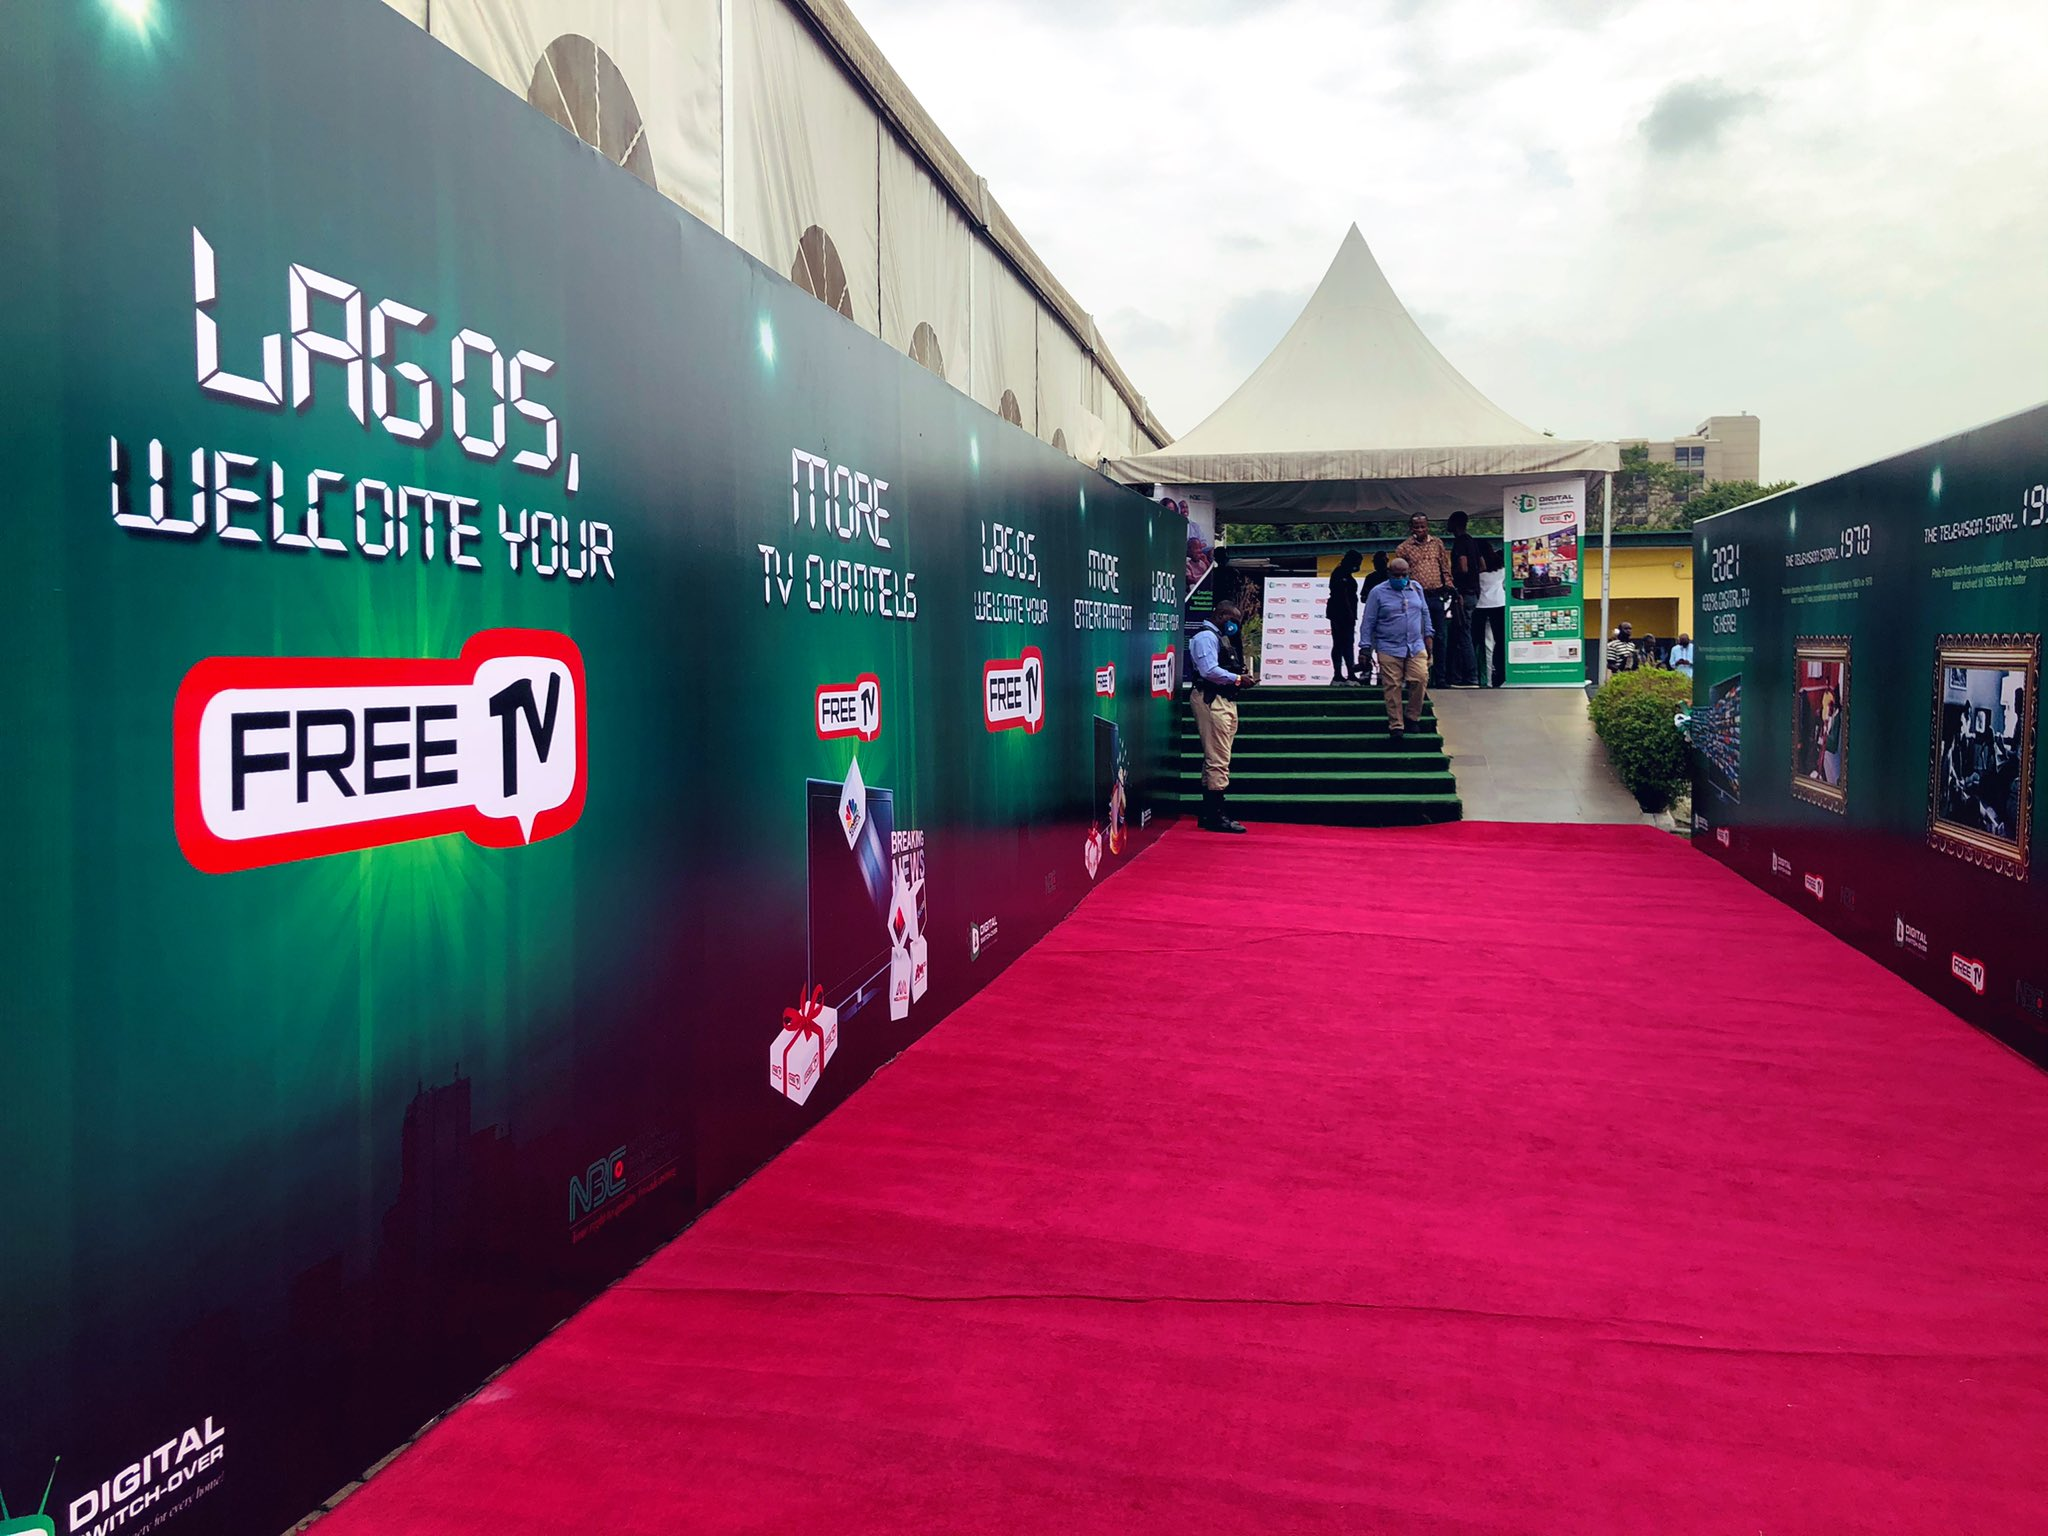 Lagos City Goes Live With Digital Terrestrial TV, SiliconNigeria